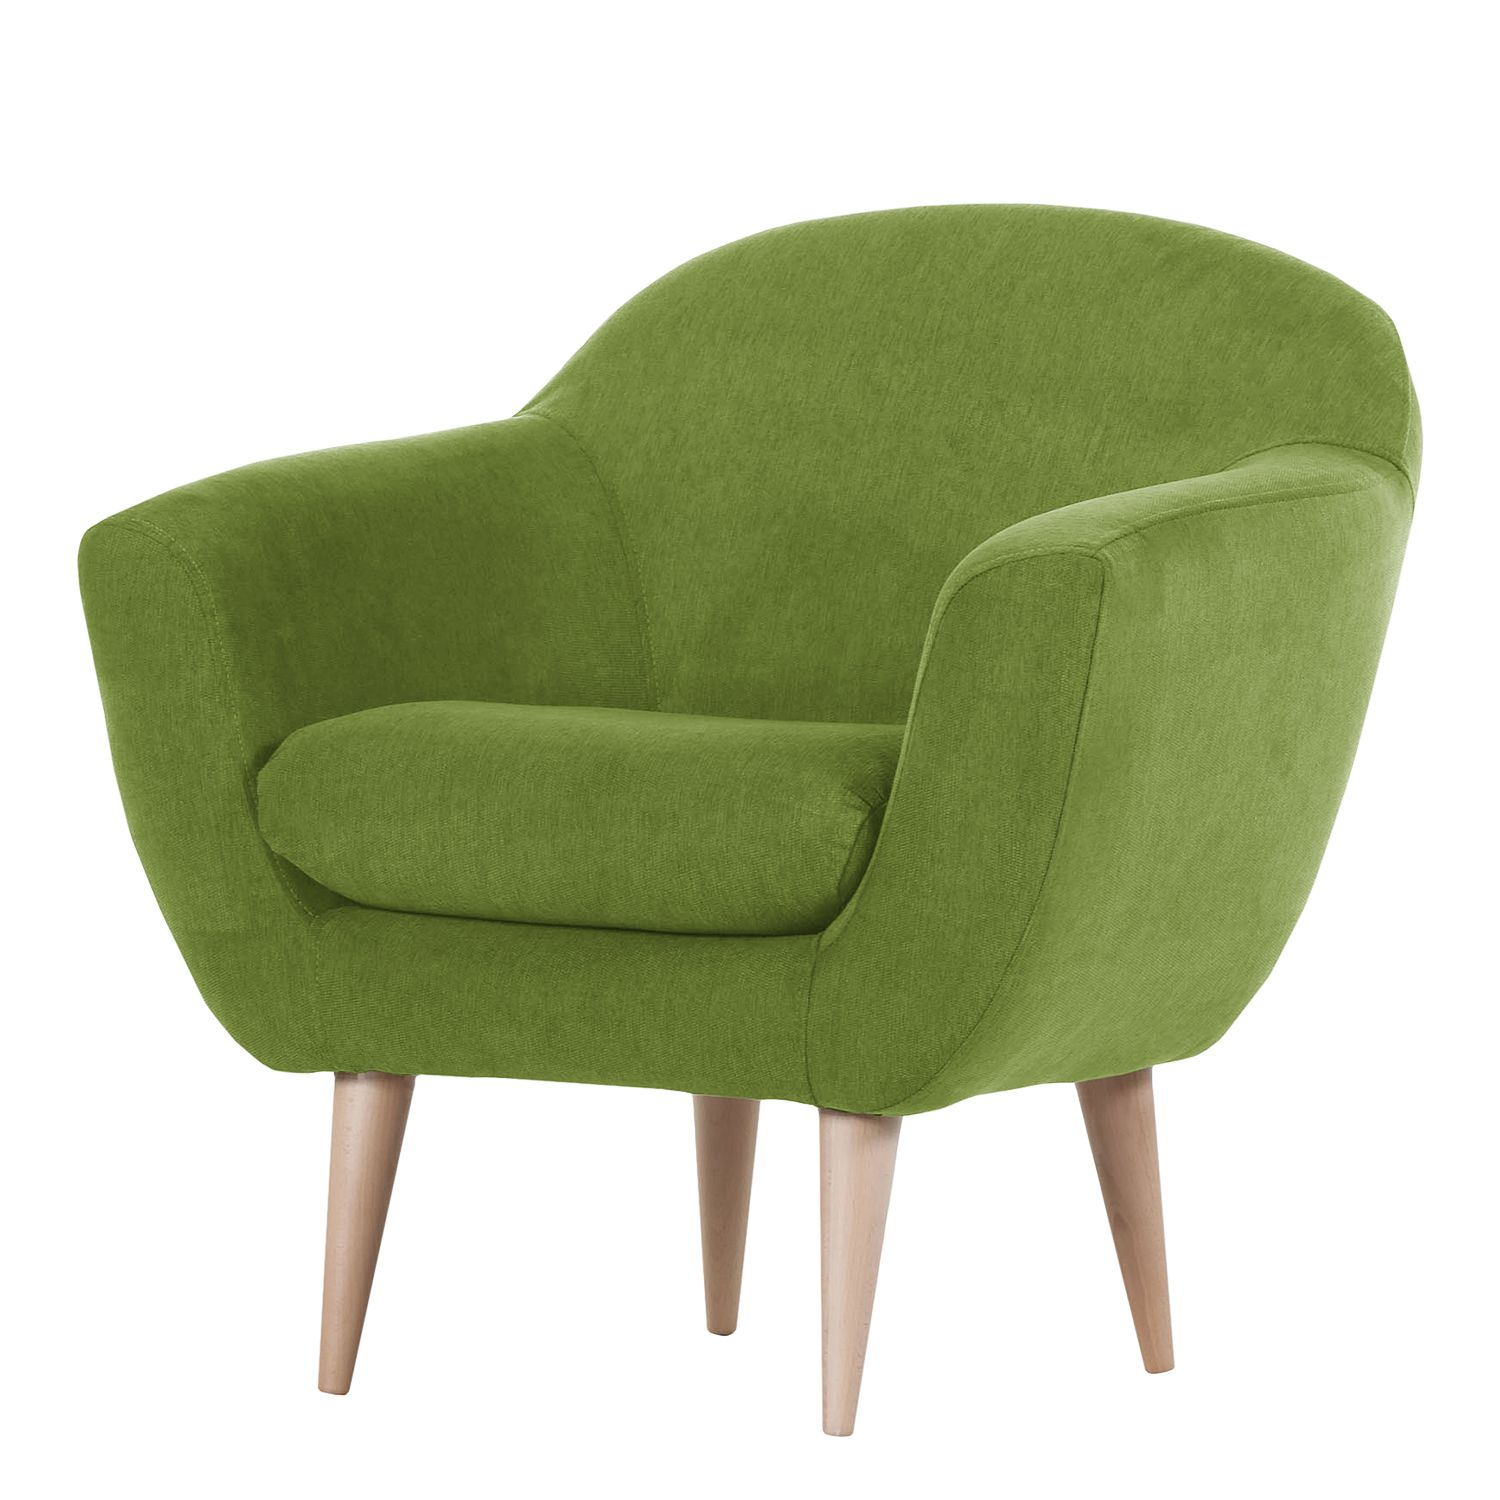 Fauteuil Channay Tissu - Avocat cannelure fine, Morteens